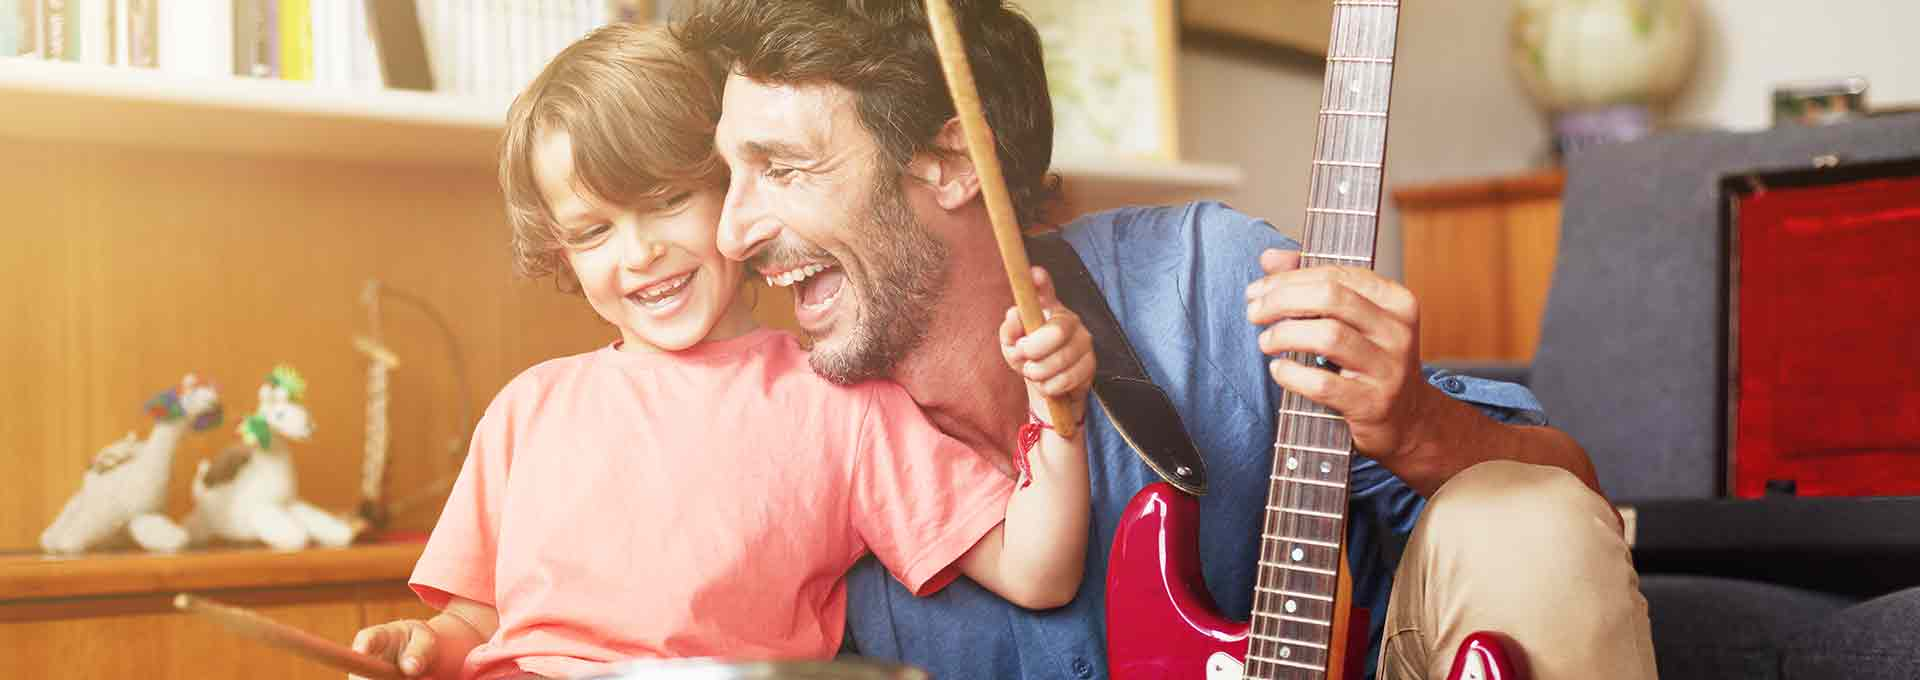 Father with Bernafon Viron hearing aids playing guitar with his five year old son playing the drums and enjoying the moment.